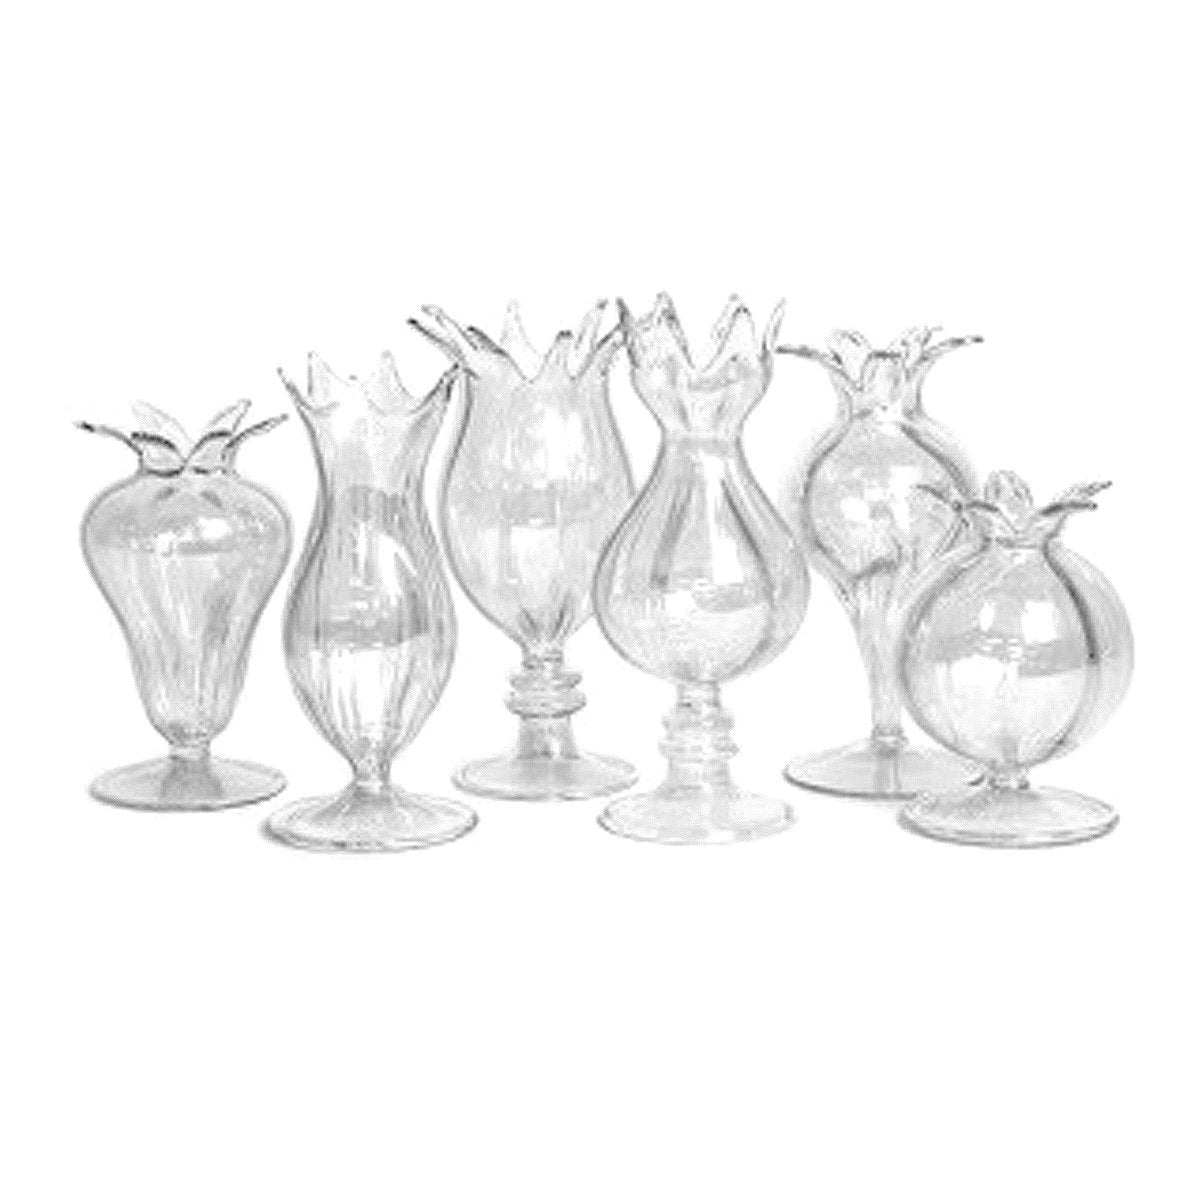 Small Vase (Capsule) set of 6